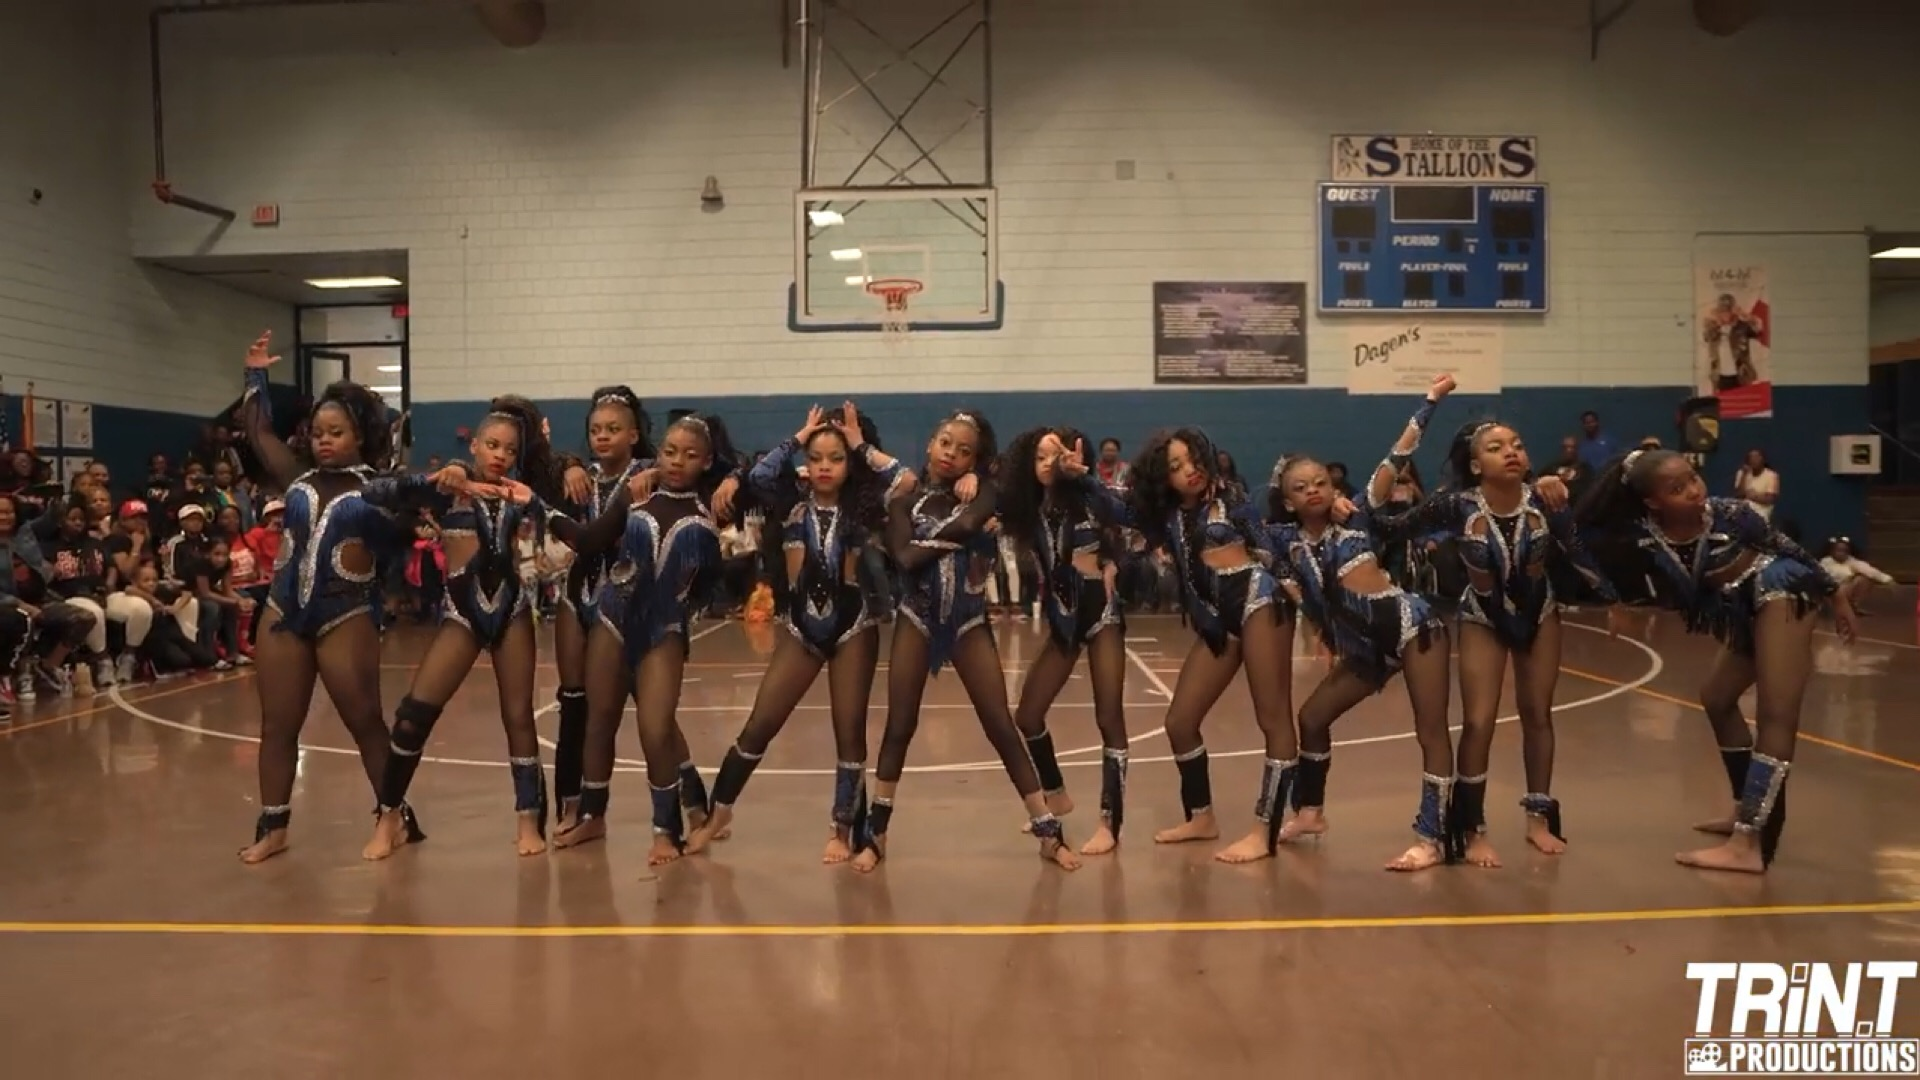 Showdown: Three Junior Majorette Teams Demonstrate A Real Dance Battle